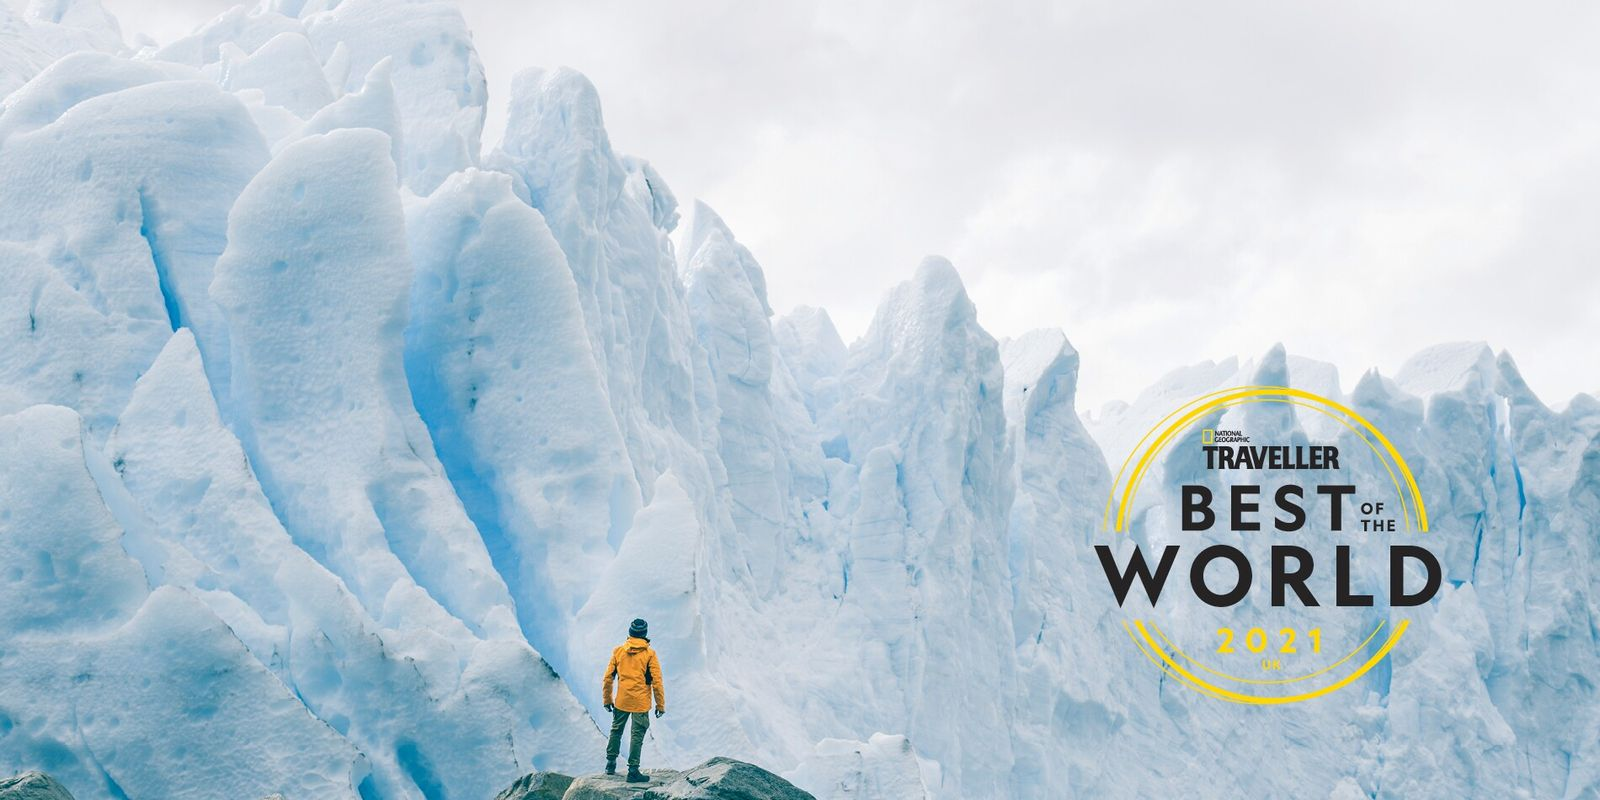 Best of the World: 35 destinations for 2021 and beyond